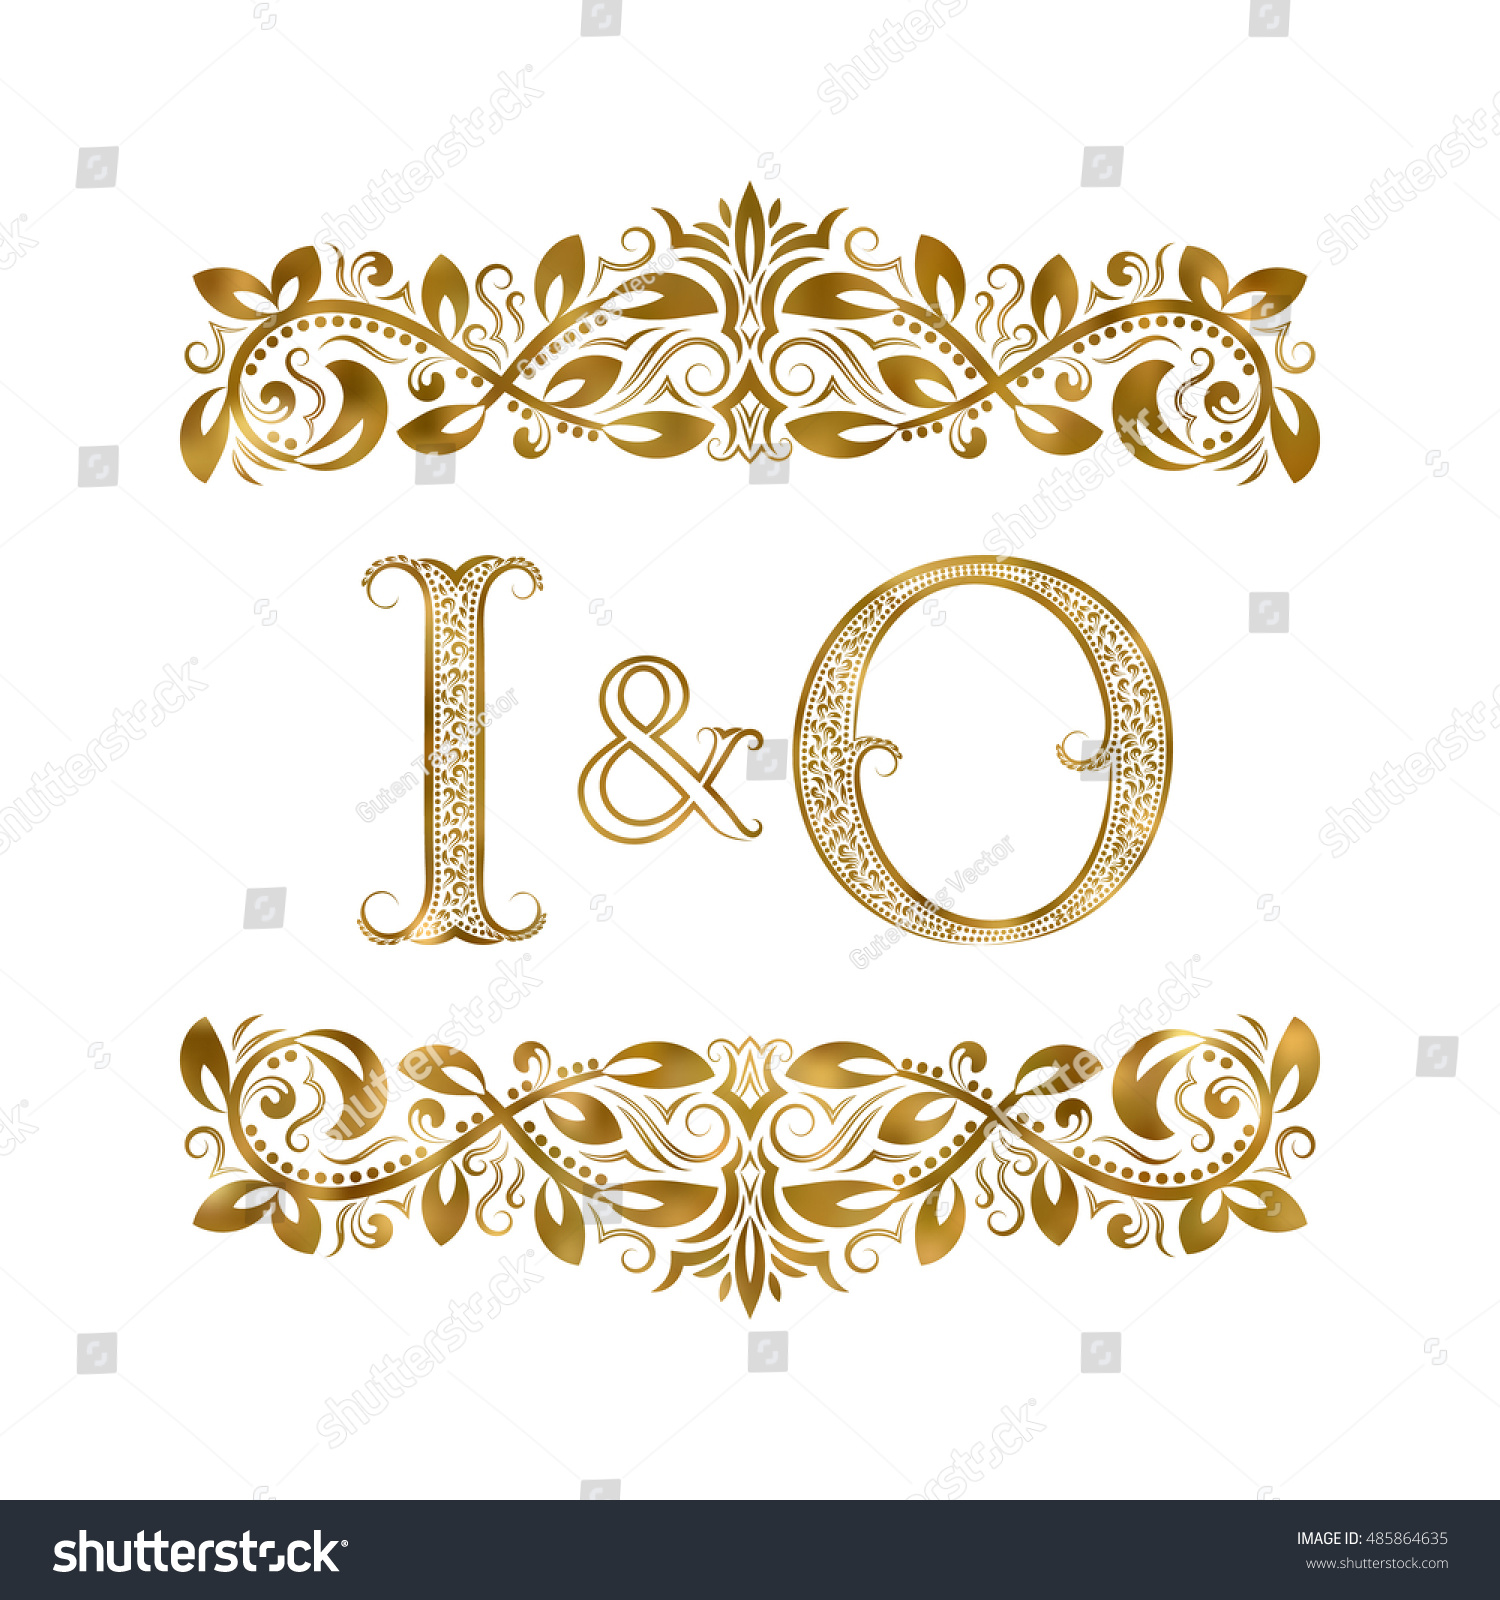 O vintage initials logo symbol letters stock vector 485864635 i and o vintage initials logo symbol the letters are surrounded by ornamental elements buycottarizona